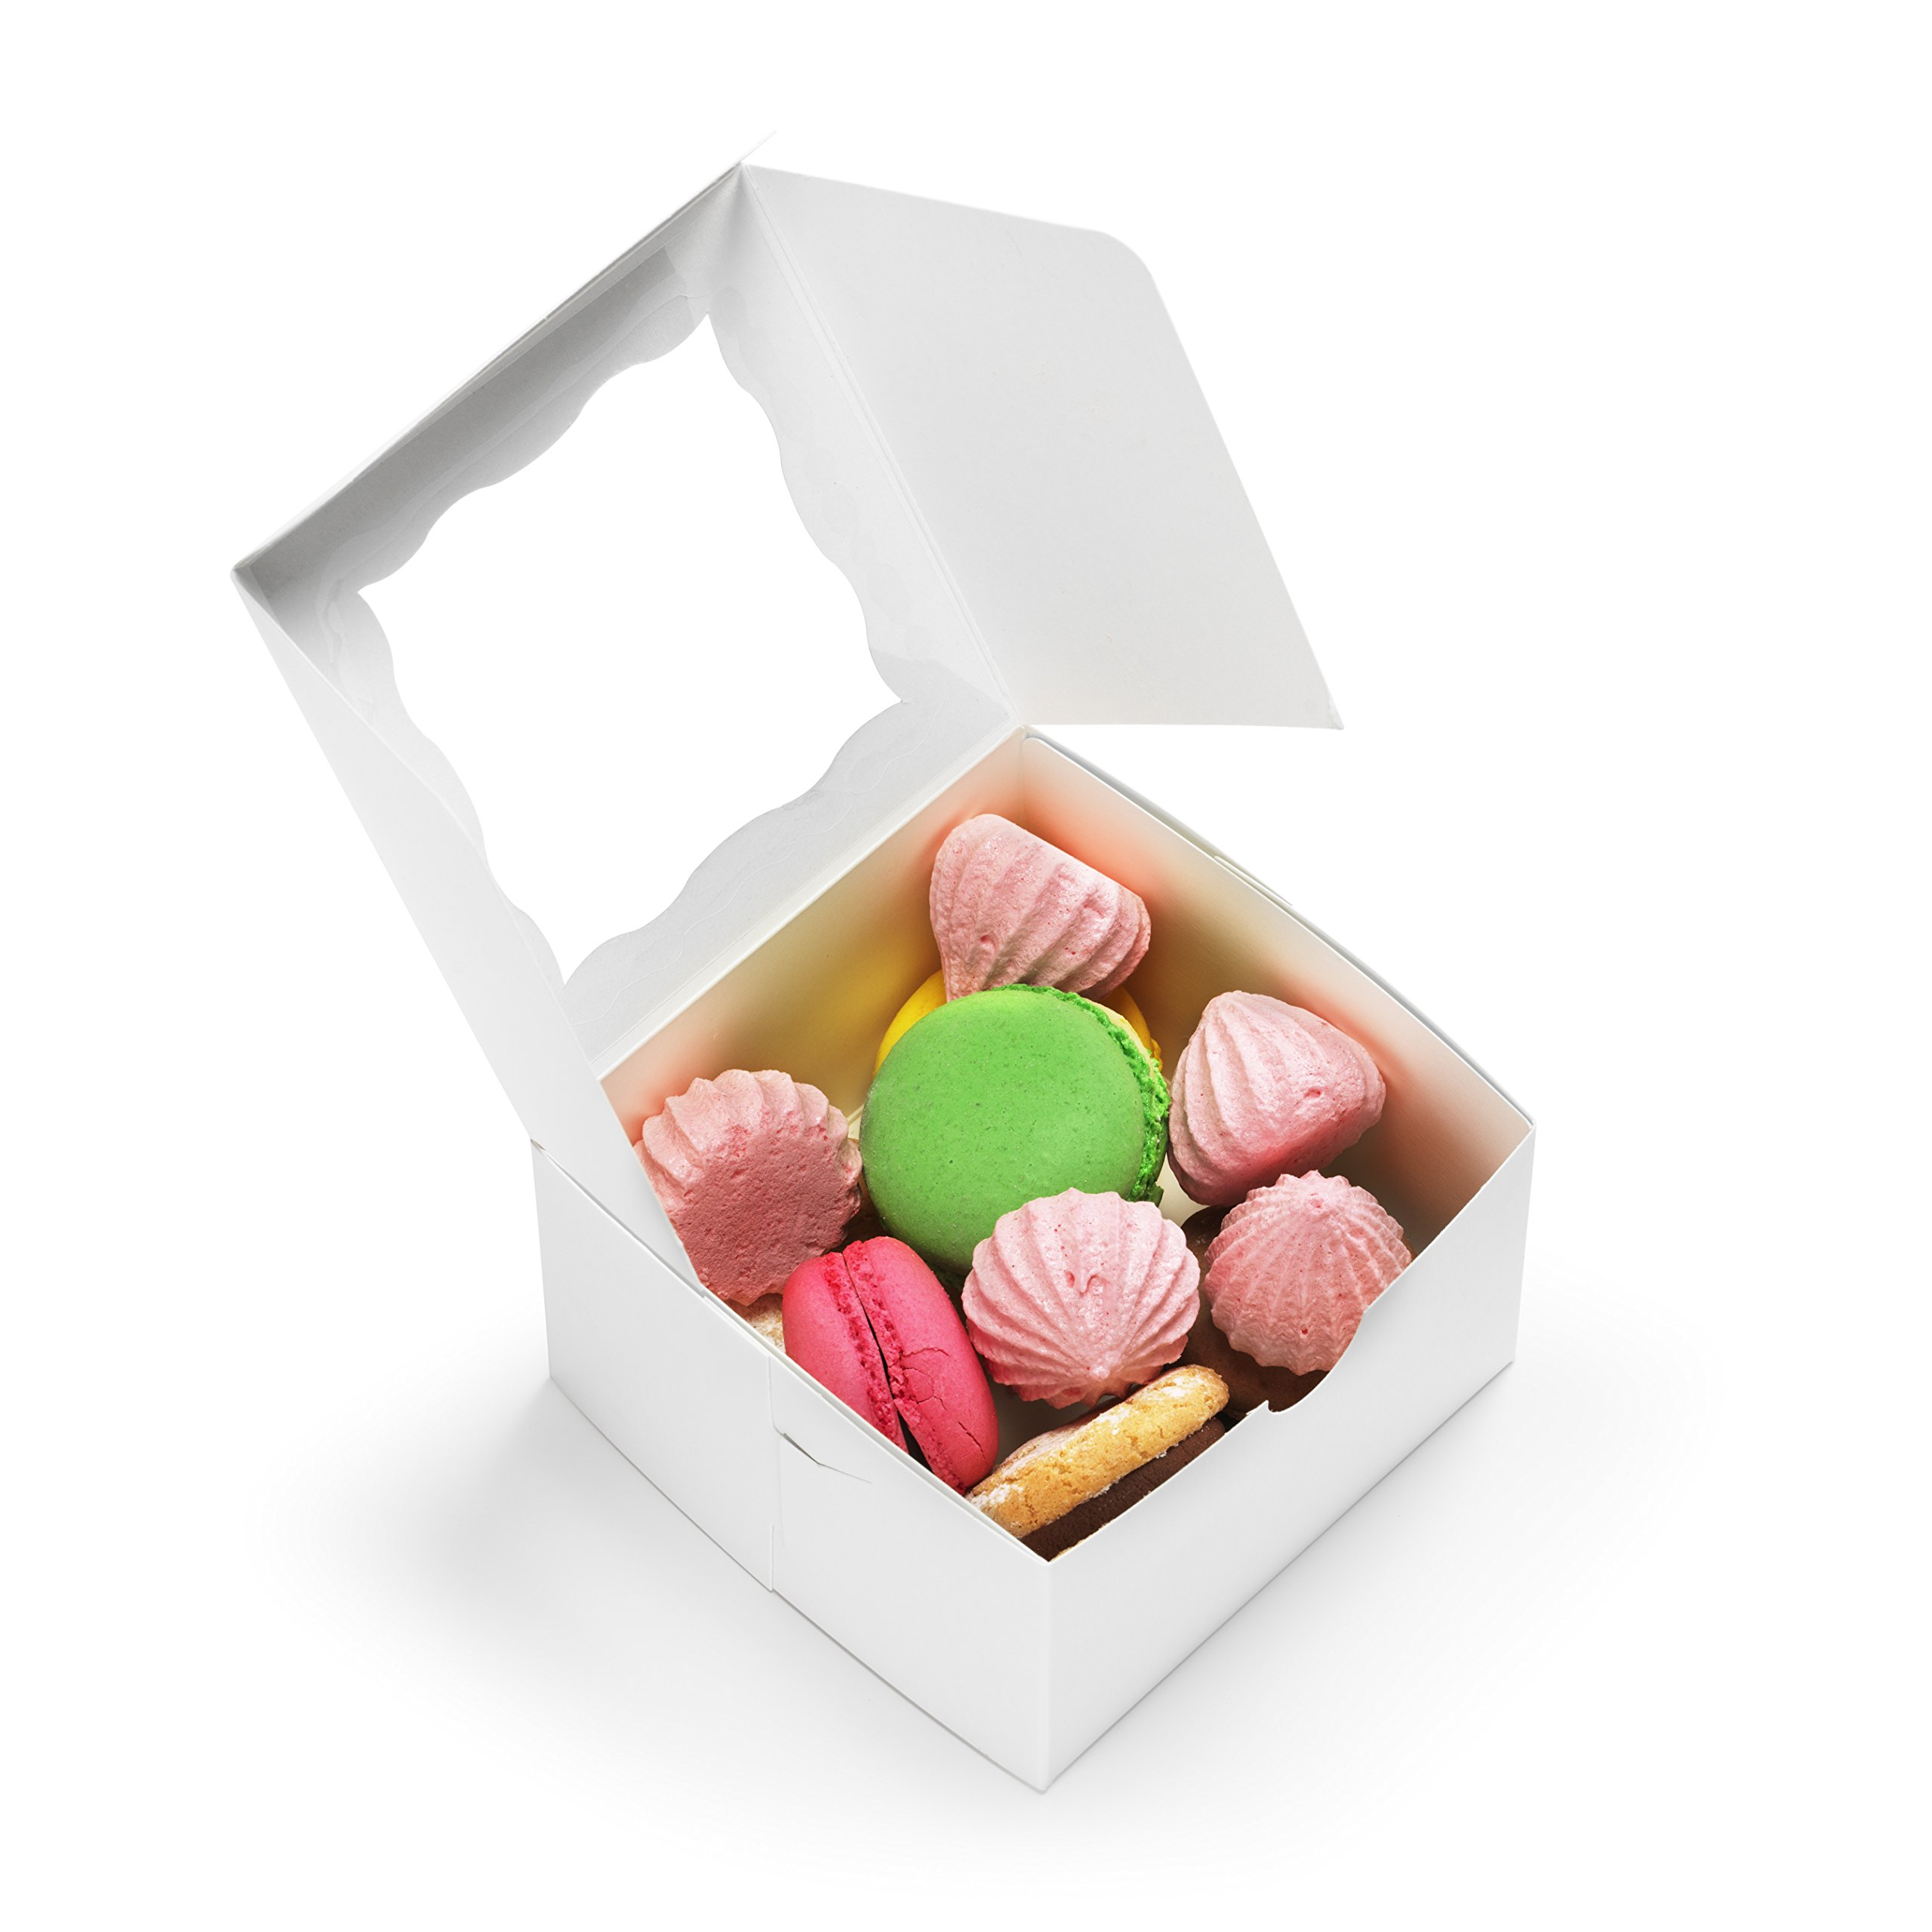 [50Pack] Bakery Boxes with Window 4x4x2.5'' Cute Pastry Containers for Cupcakes, Wedding Cake/Treat/Party Favors, Donuts, Desserts, Cookies (White)